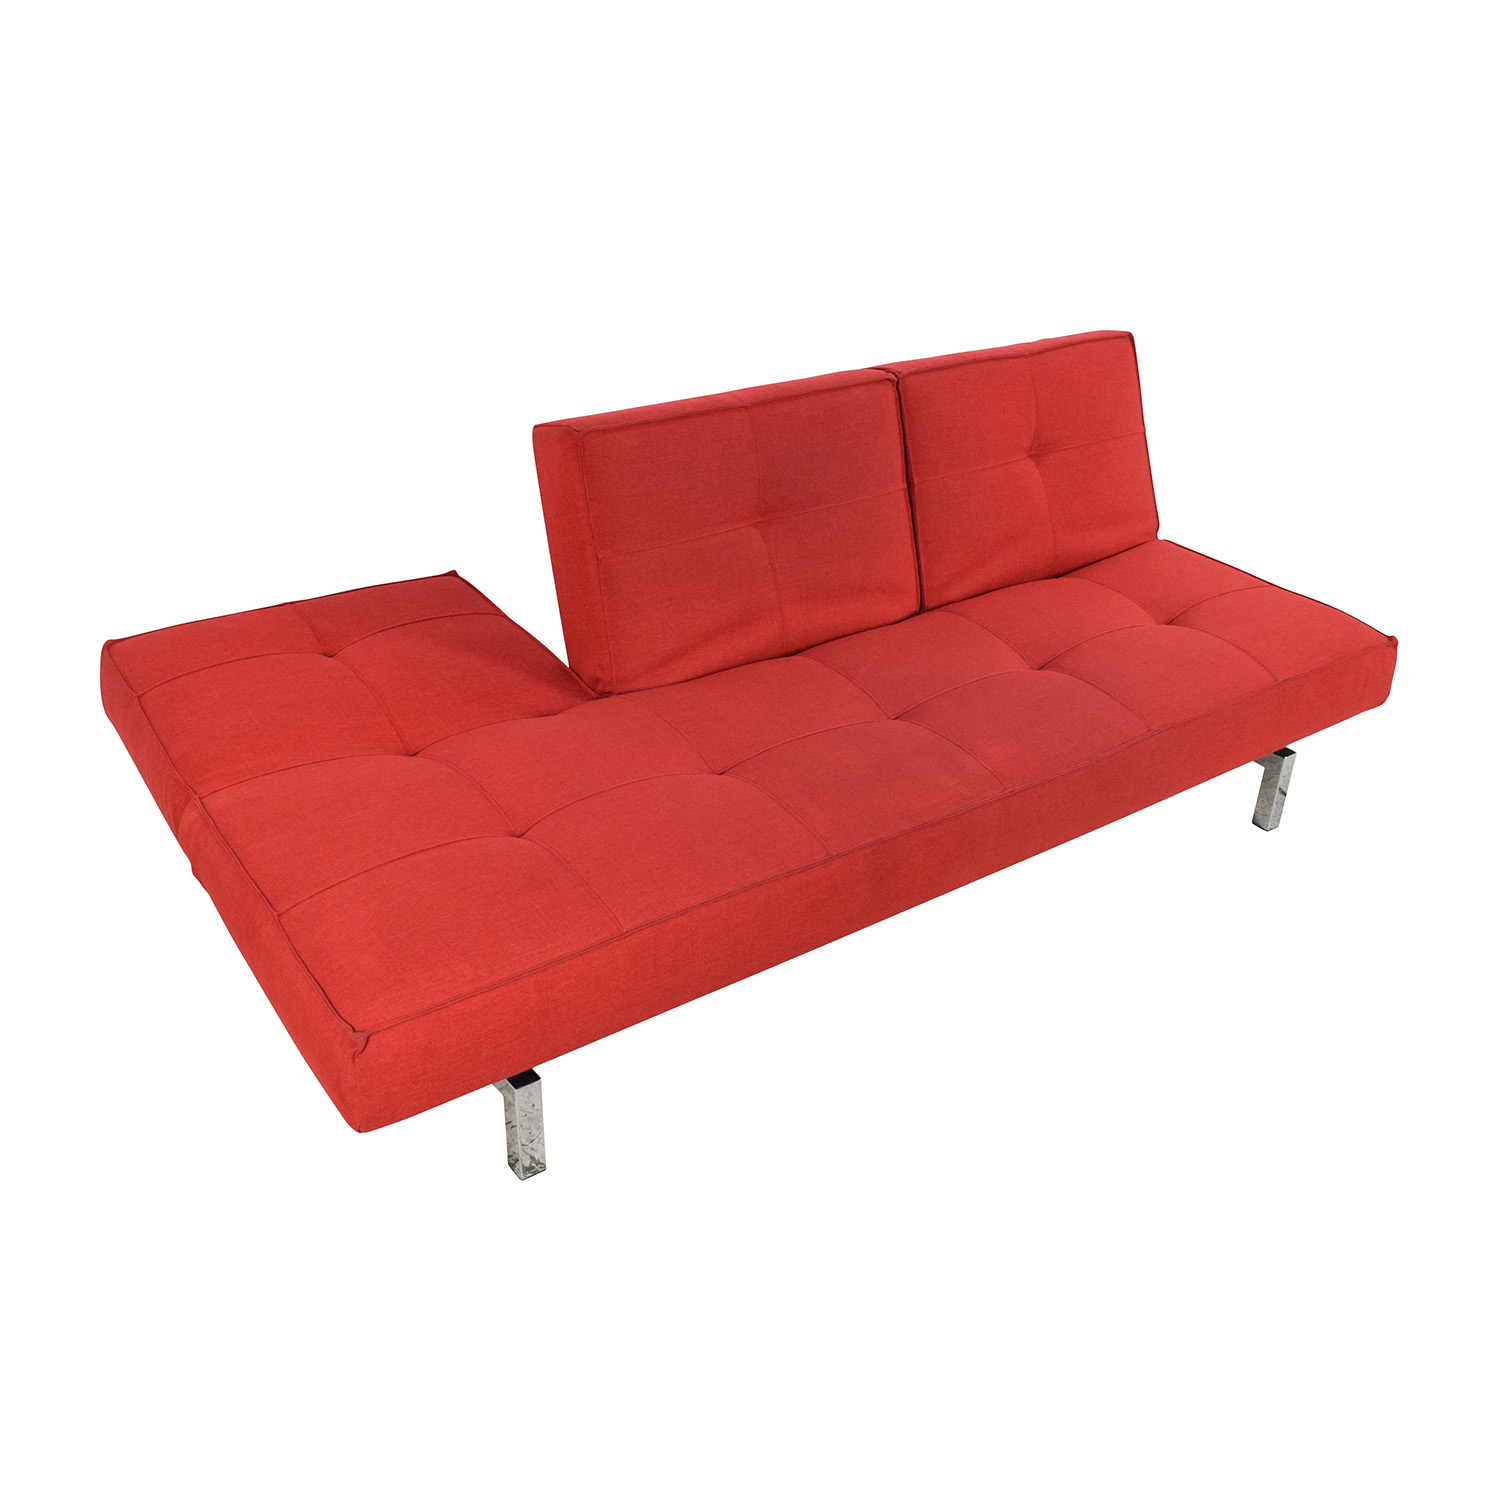 room and board sectional sofa bed anese floor 51 off eden convertible red